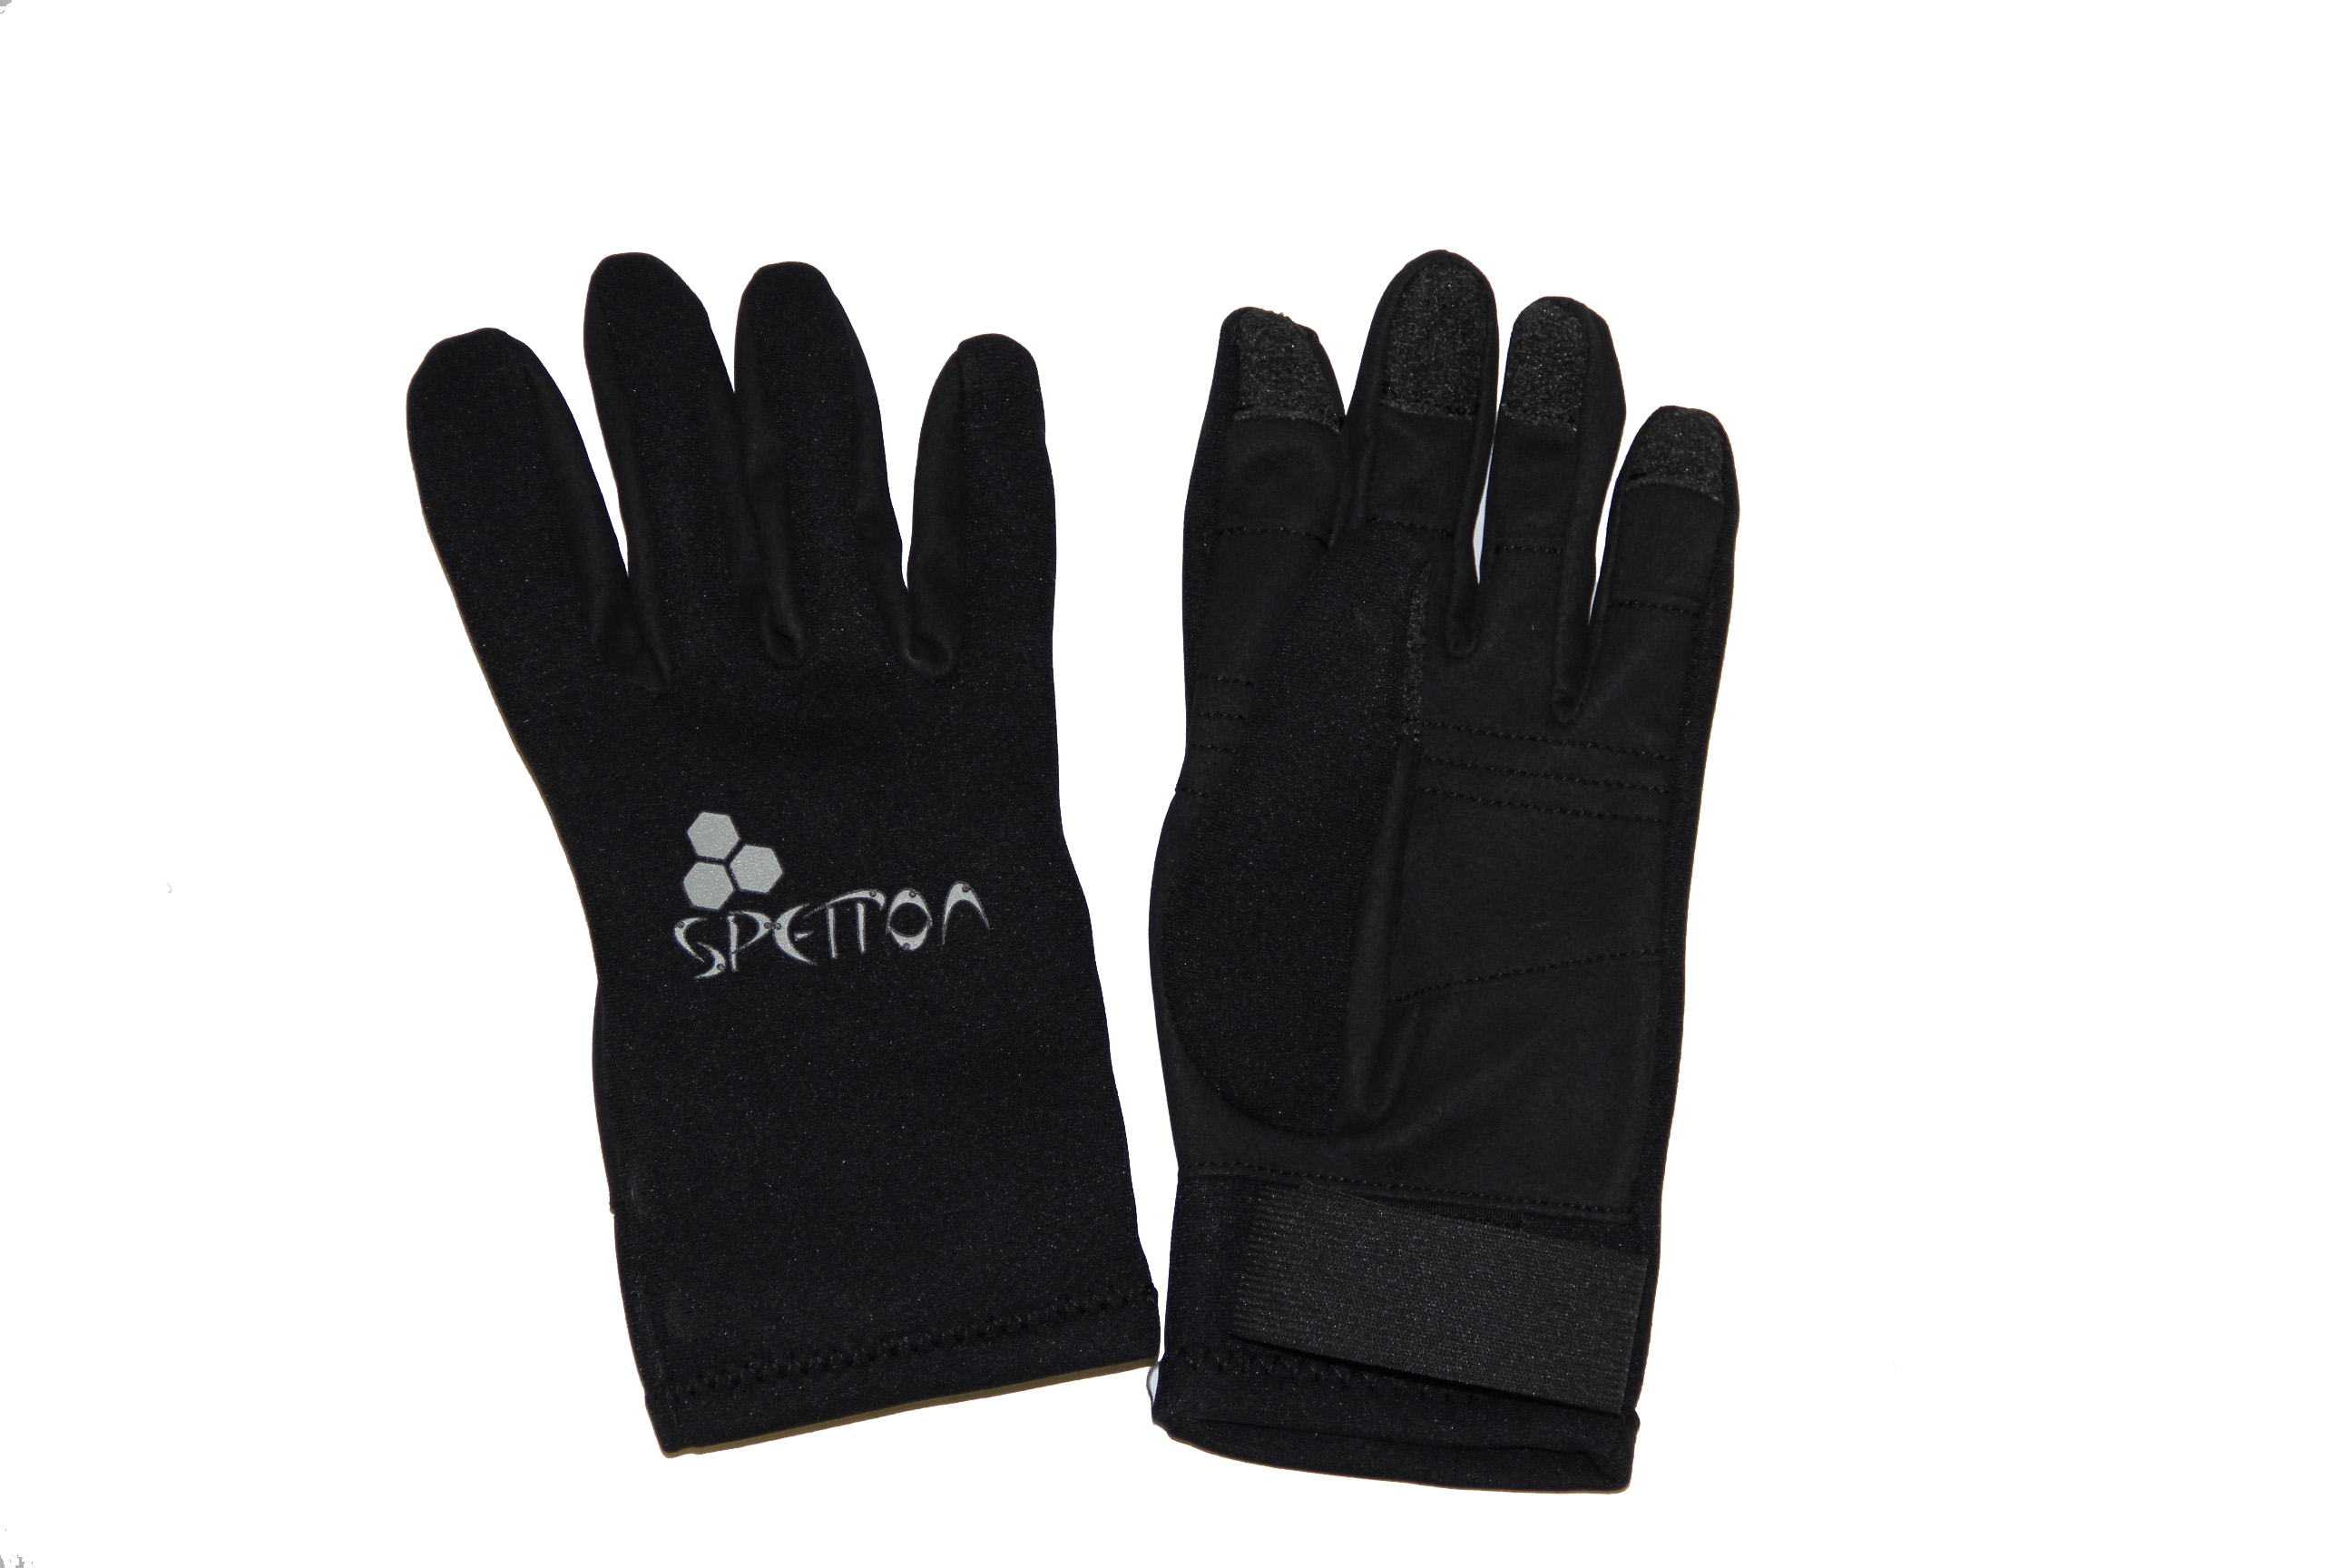 p-1453-spearfishing-affordable-amara-gloves-spetton.jpg